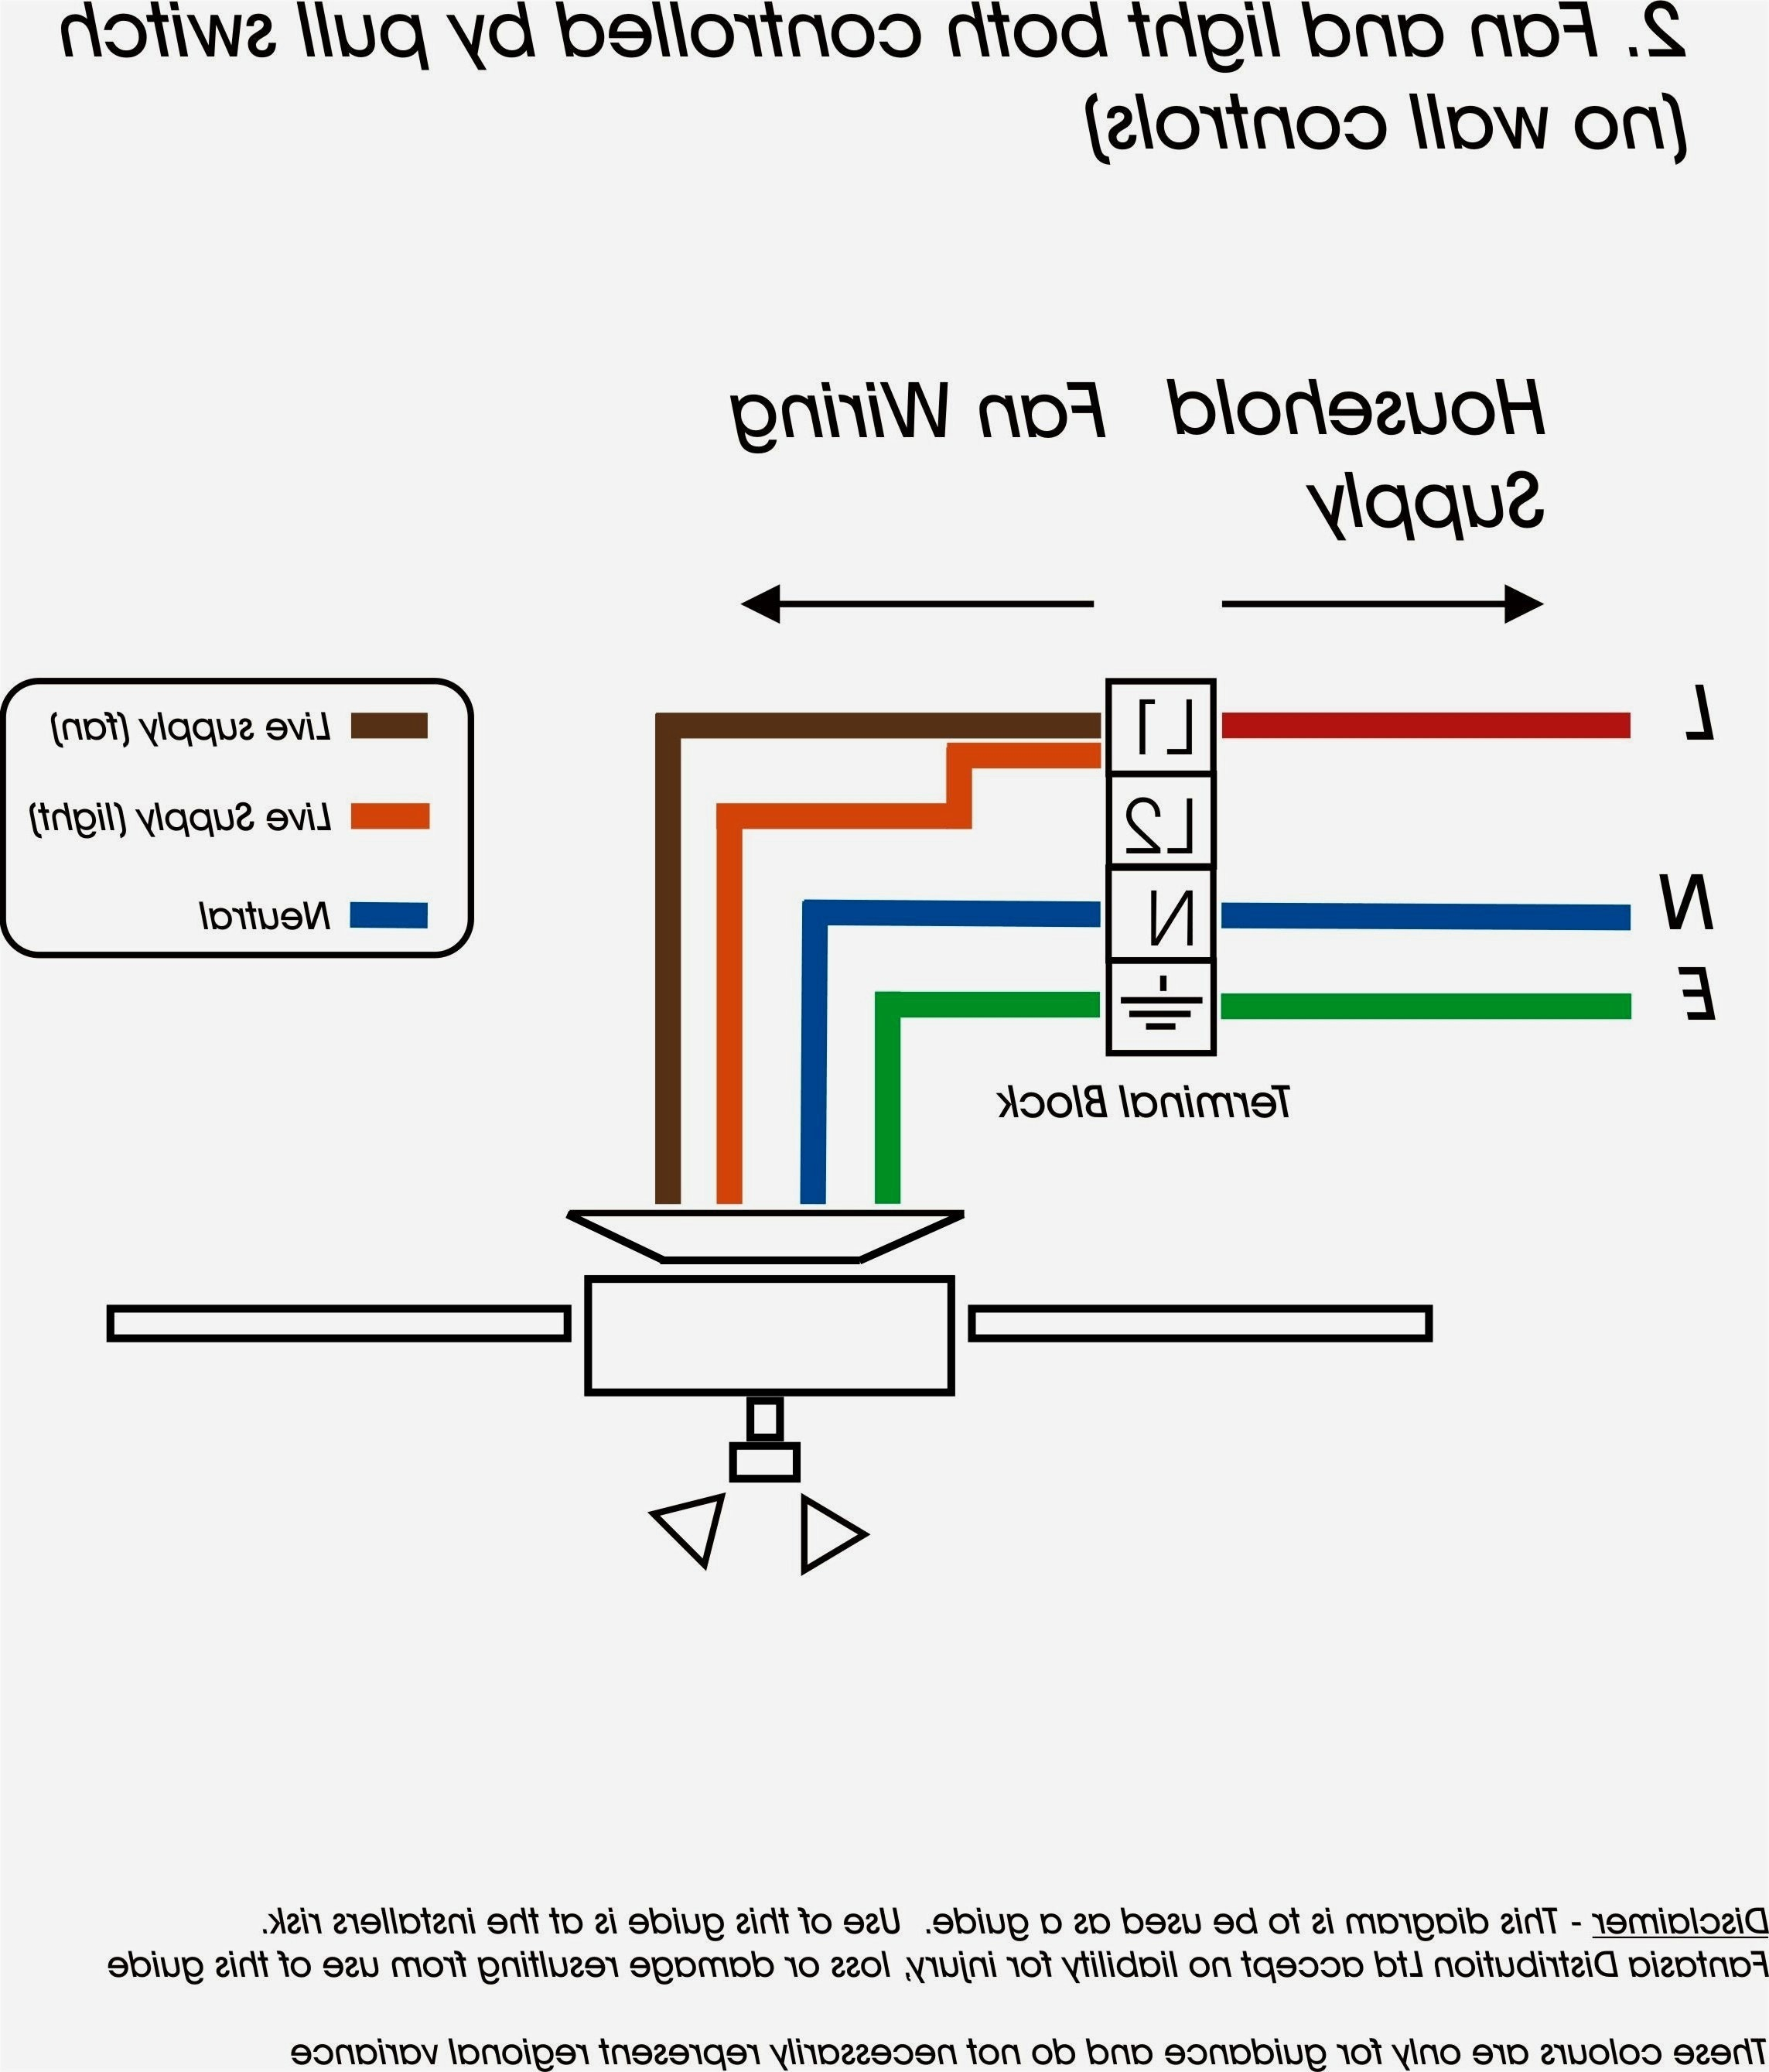 white rodgers thermostat wiring diagram 1f79 Download-heath zenith doorbell wiring diagram Download Broan Nutone Doorbell Wiring Diagram Download 5 n DOWNLOAD Wiring Diagram 7-l